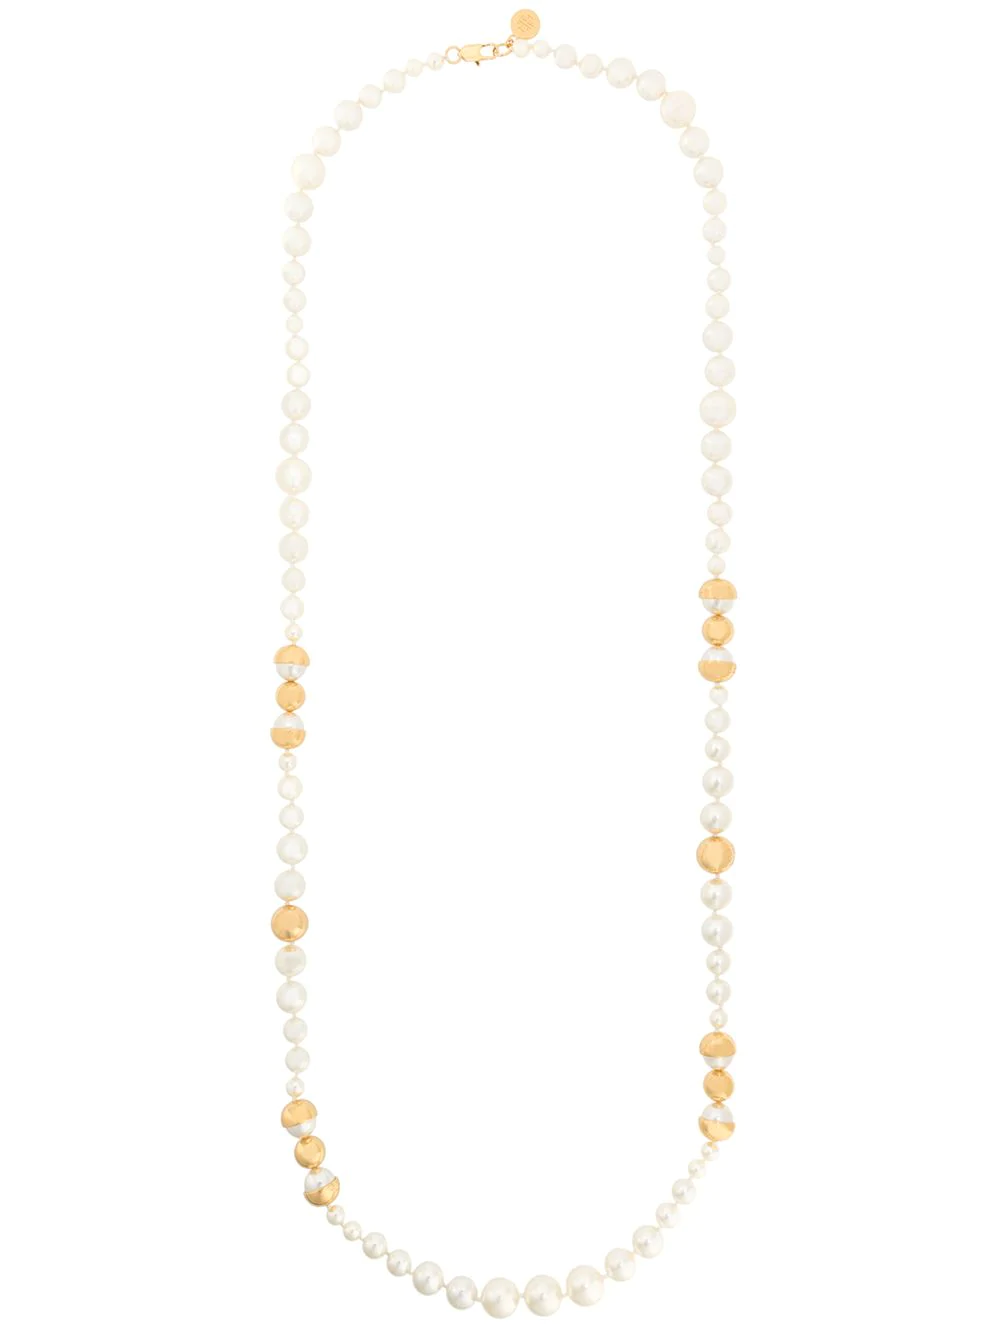 Tory Burch Pearl Necklace - White